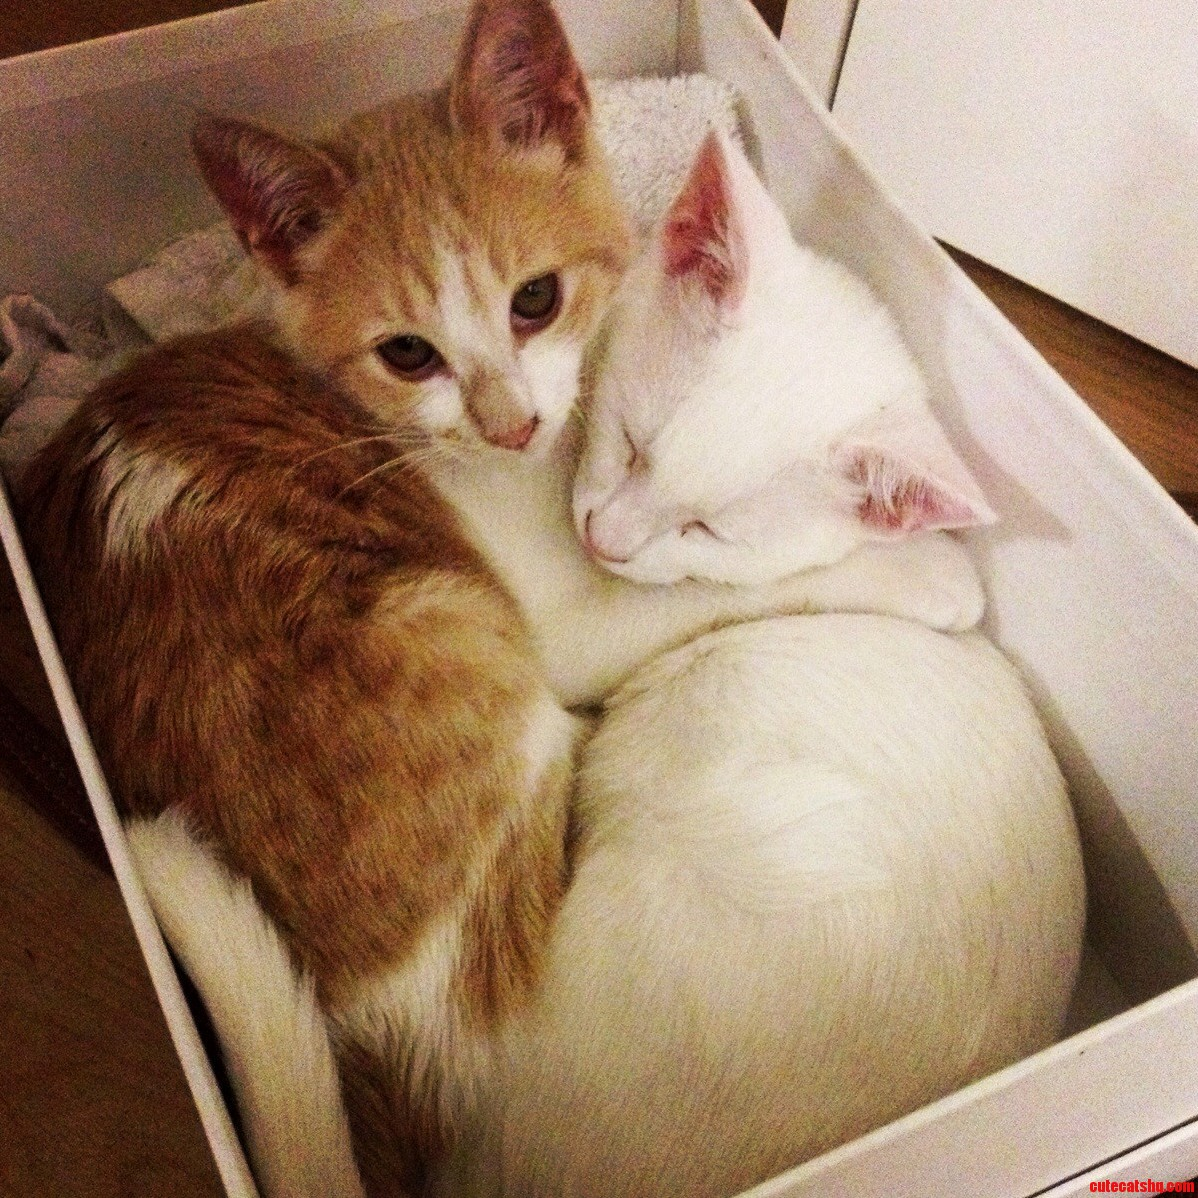 Packed Like Kittens In A Cookie Box.